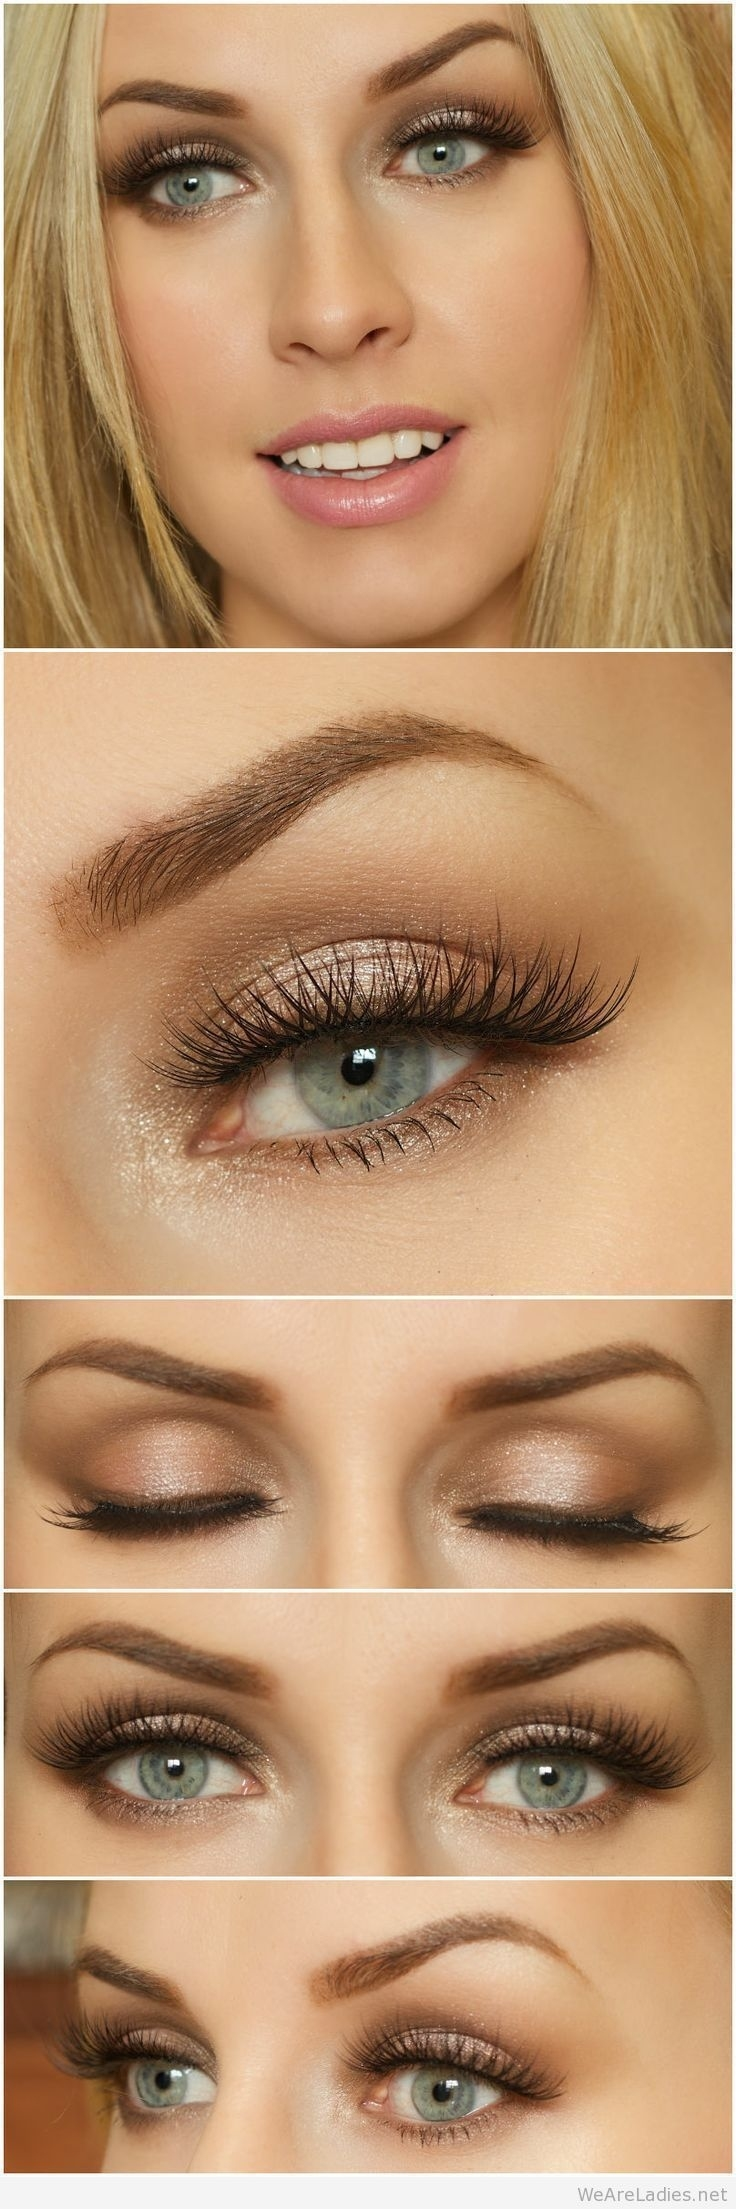 Best Selling Makeup | Makeup,nails In 2019 | Wedding Makeup within Best Eyeshadow For Green Eyes And Fair Skin